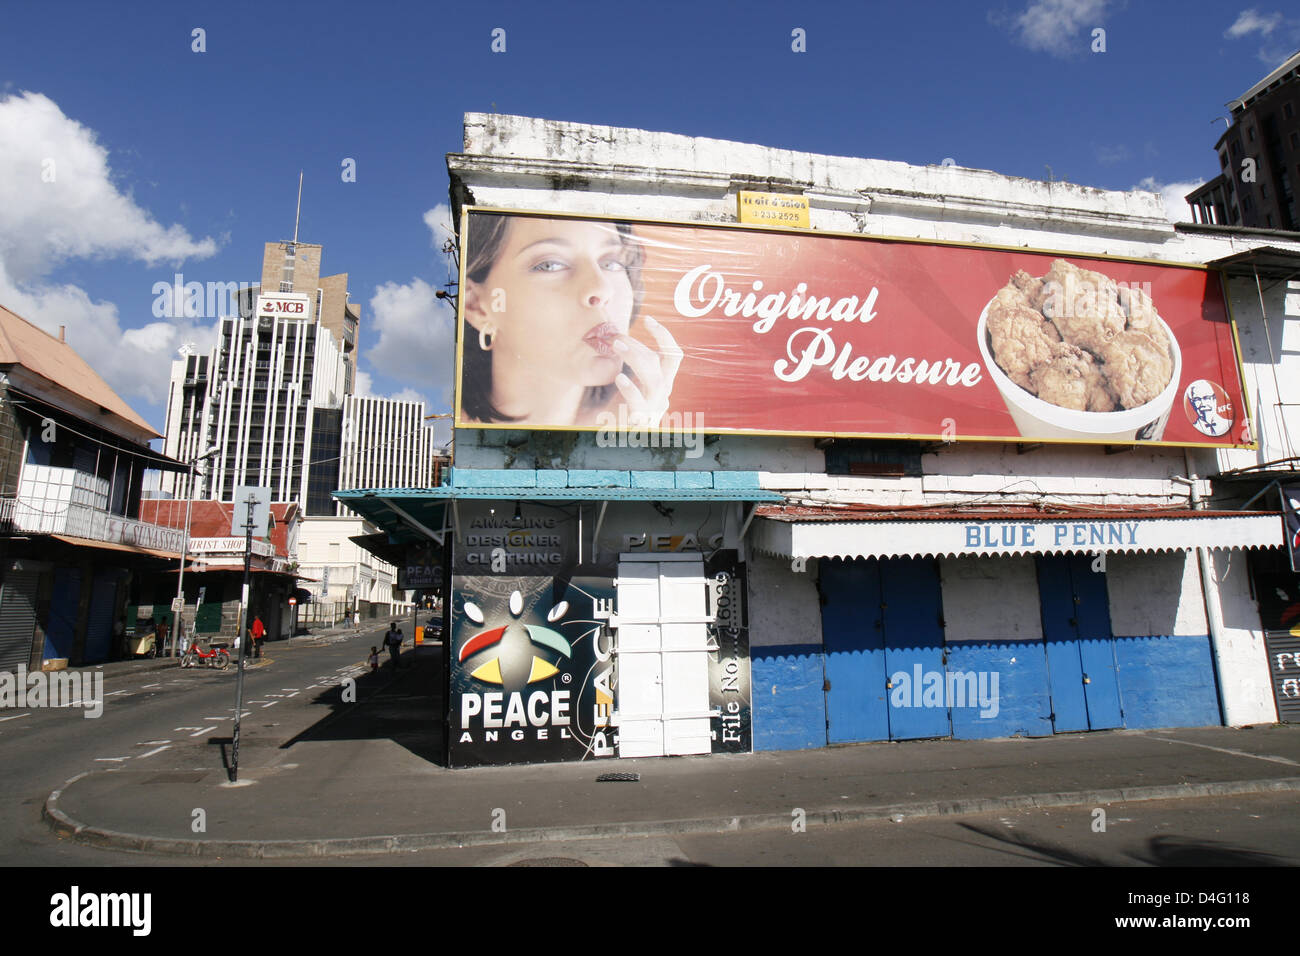 The picture shows a street scene in Port Louis on Mauritius